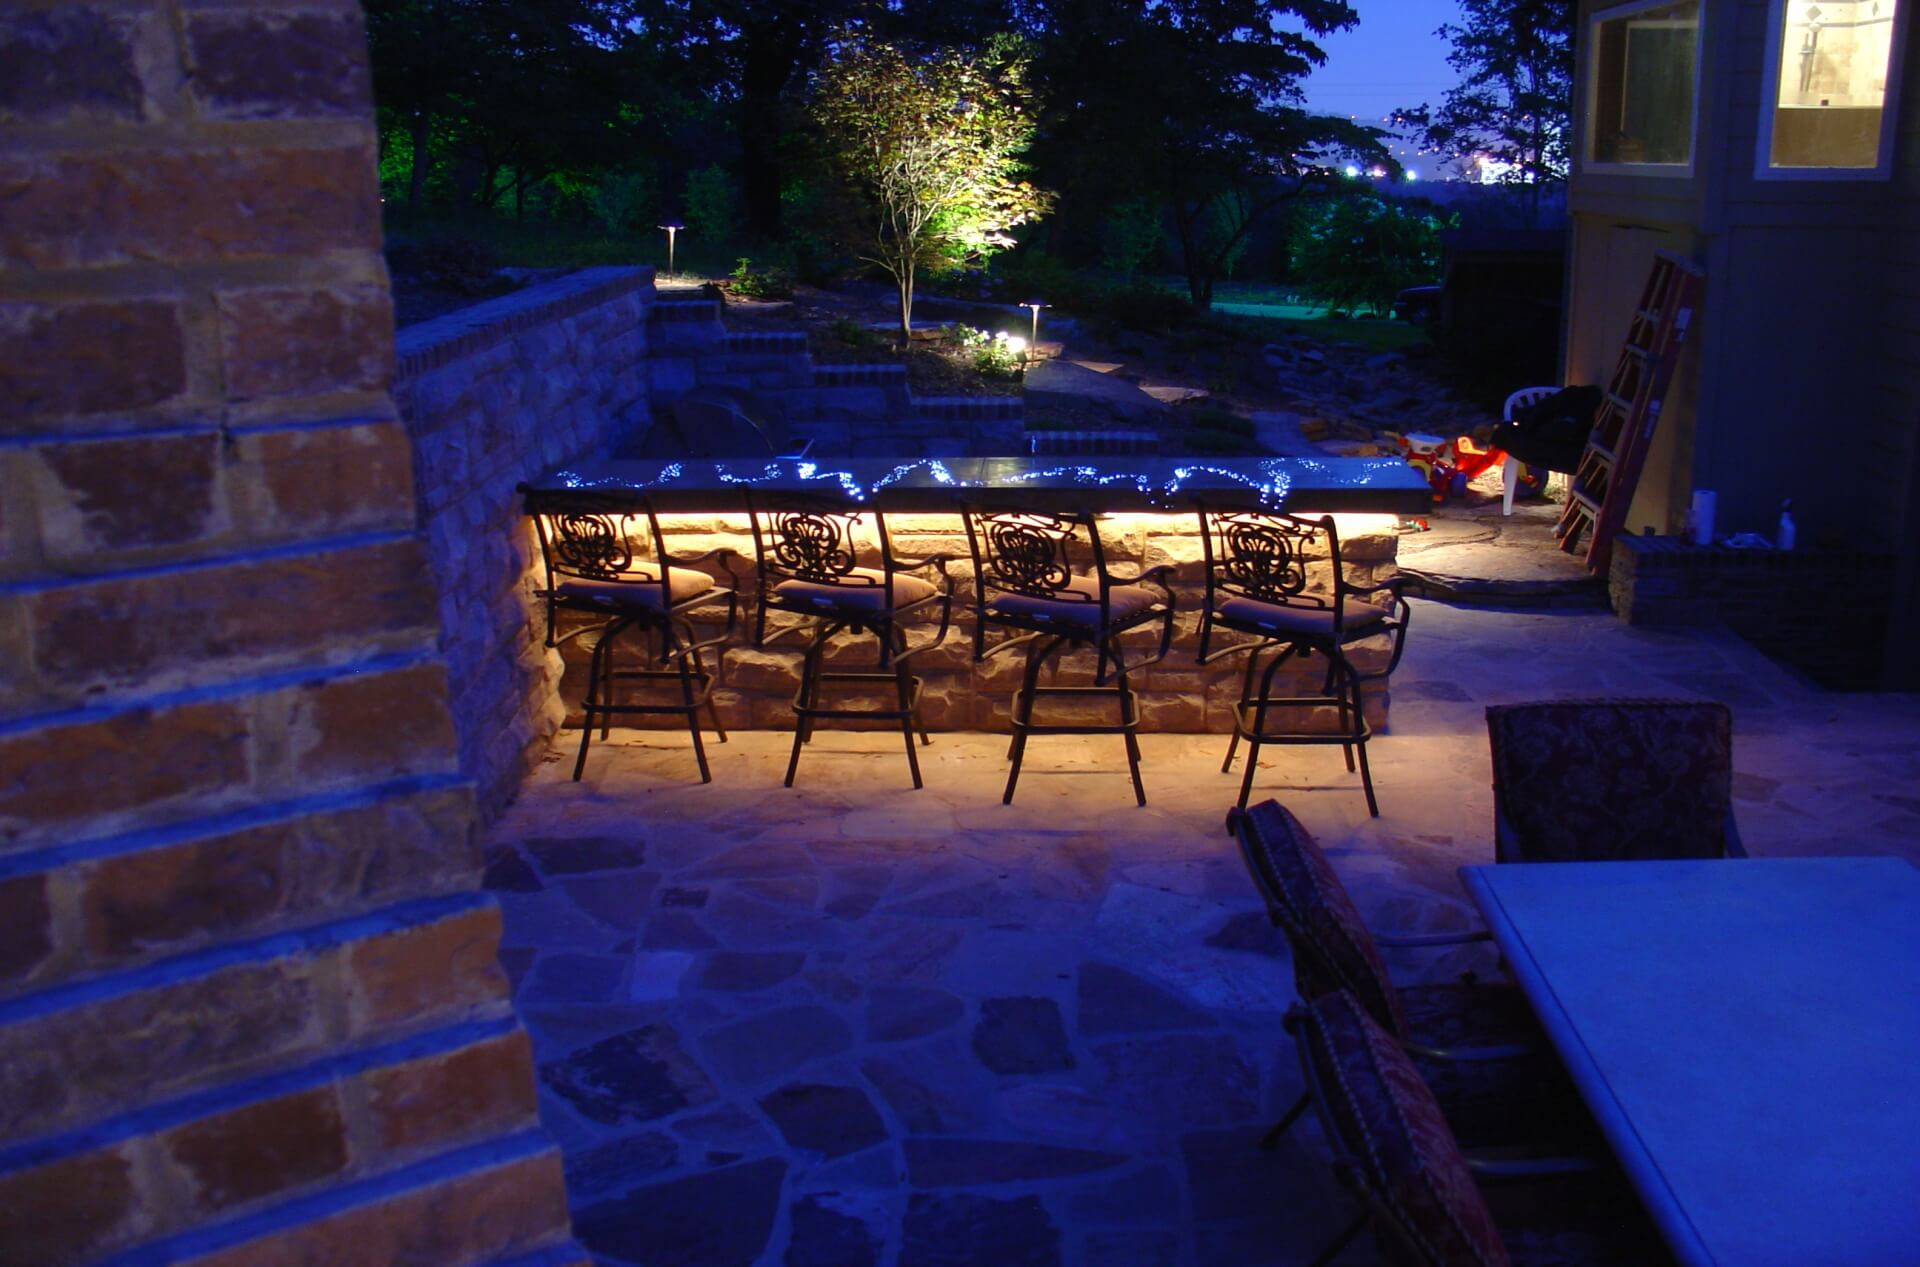 Awesome-Fiber-Optic-Countertop-Outdoor-Kitchen